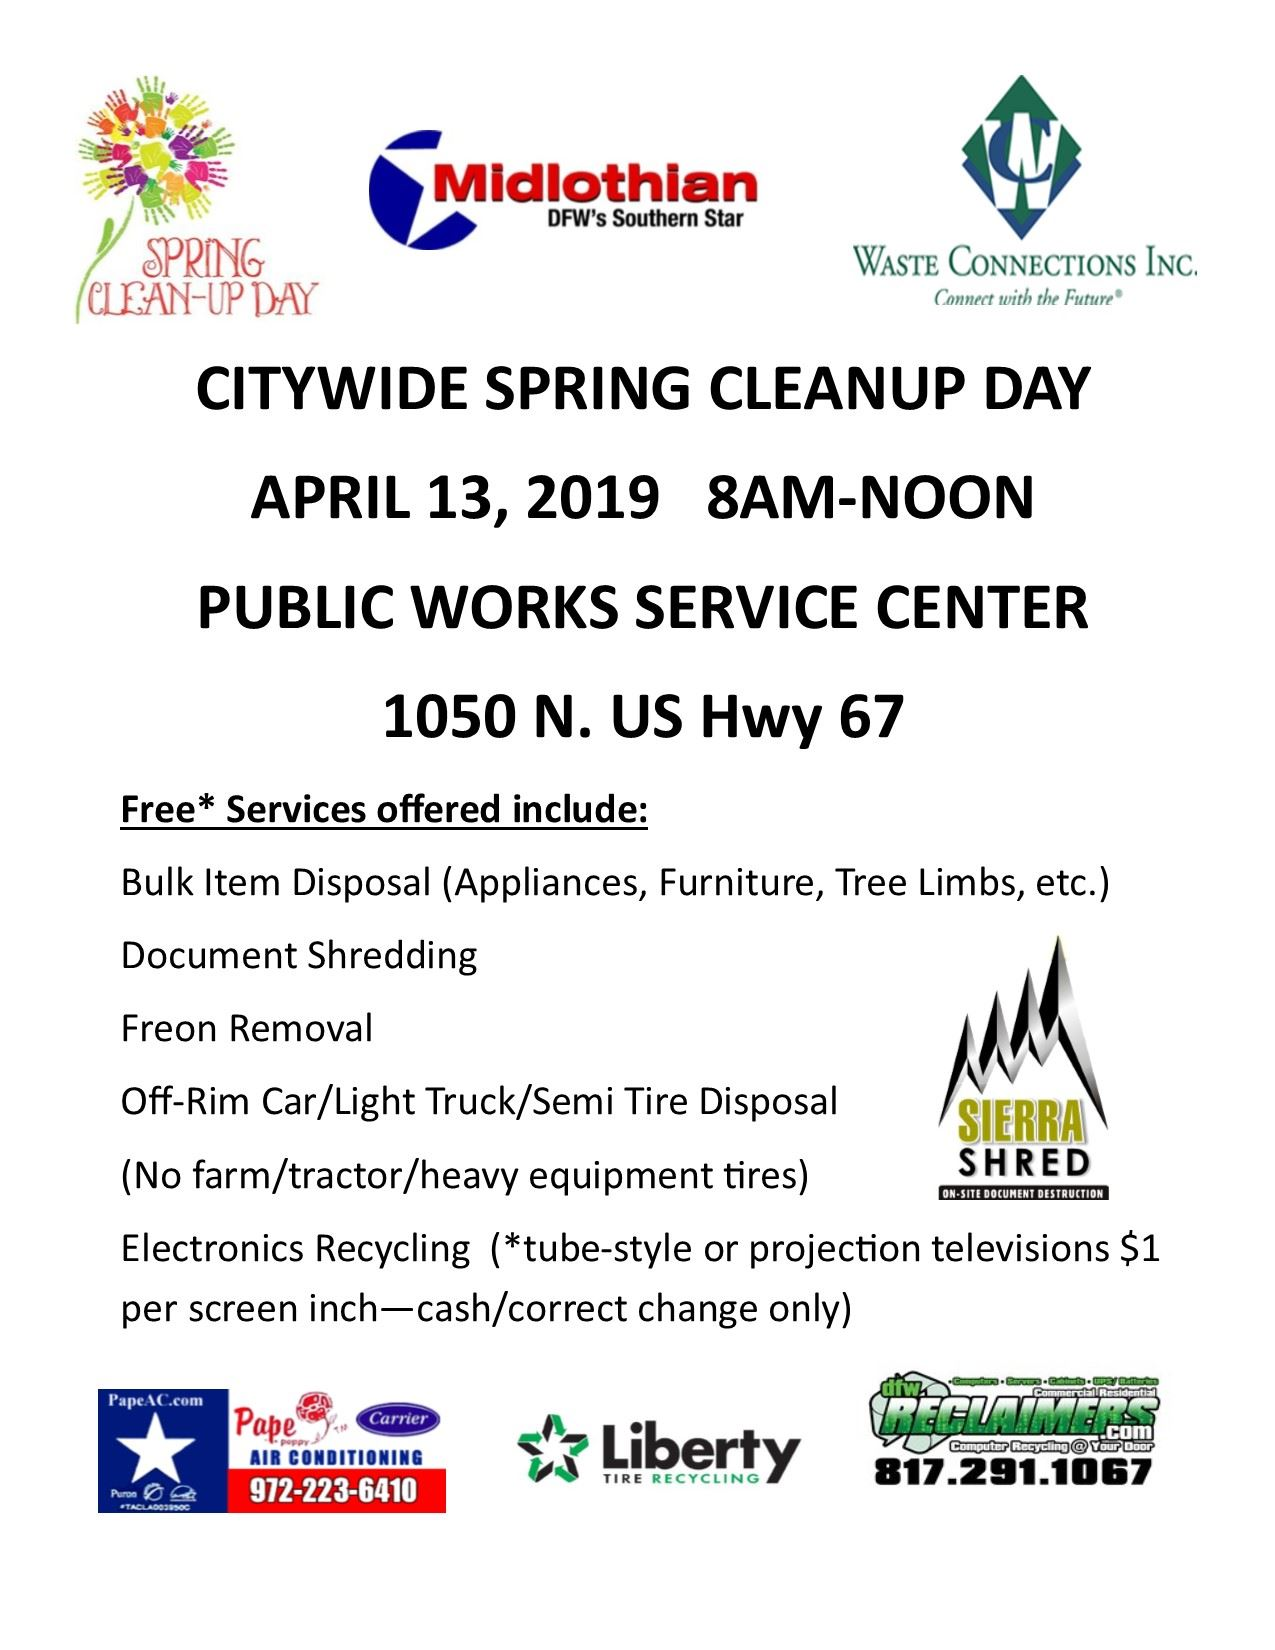 Spring Clean Up Day 2019